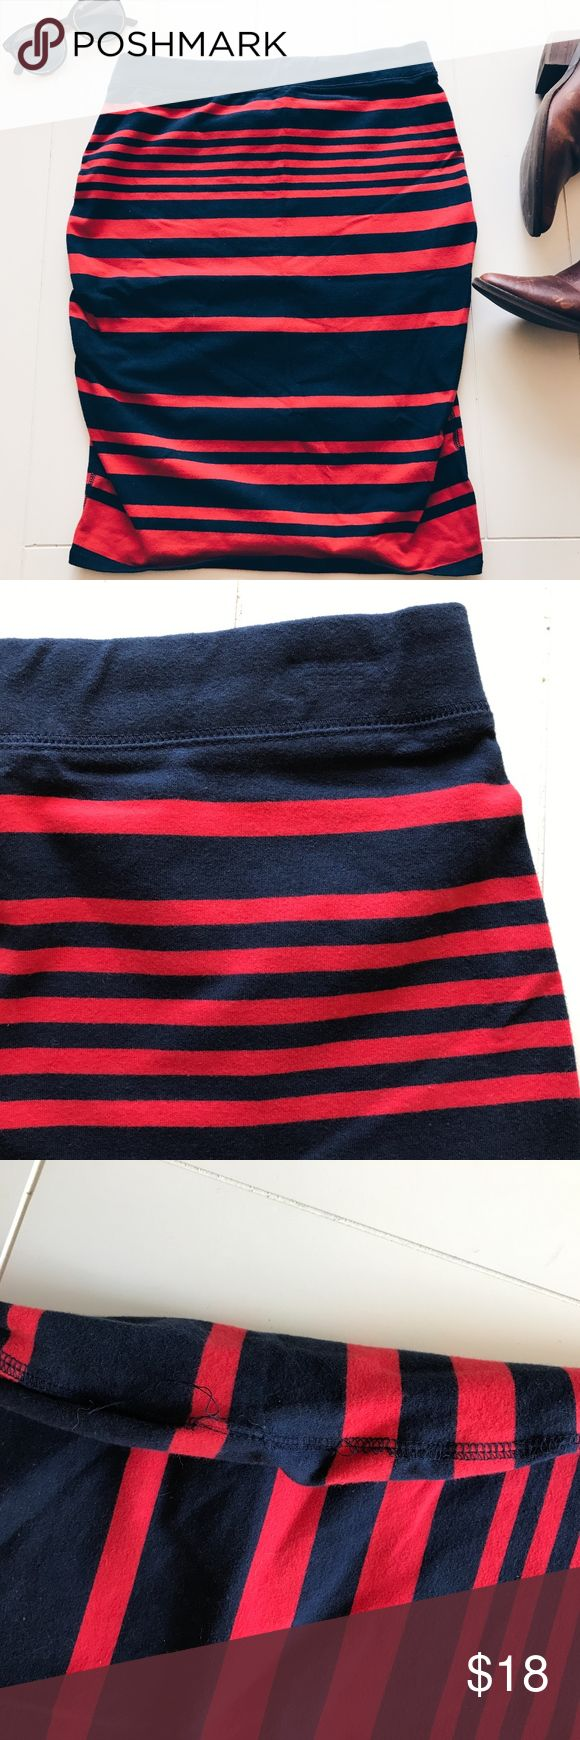 Old Navy - Red and Navy Striped Skirt Very cute, red and navy striped skirt from Old Navy! In good used condition. I wore it mostly during my pregnancy. Stretchy cotton material. Great for the fall/winter months! Photos show some tears in the seam. Nothing too bad. Offers welcomed! Old Navy Skirts